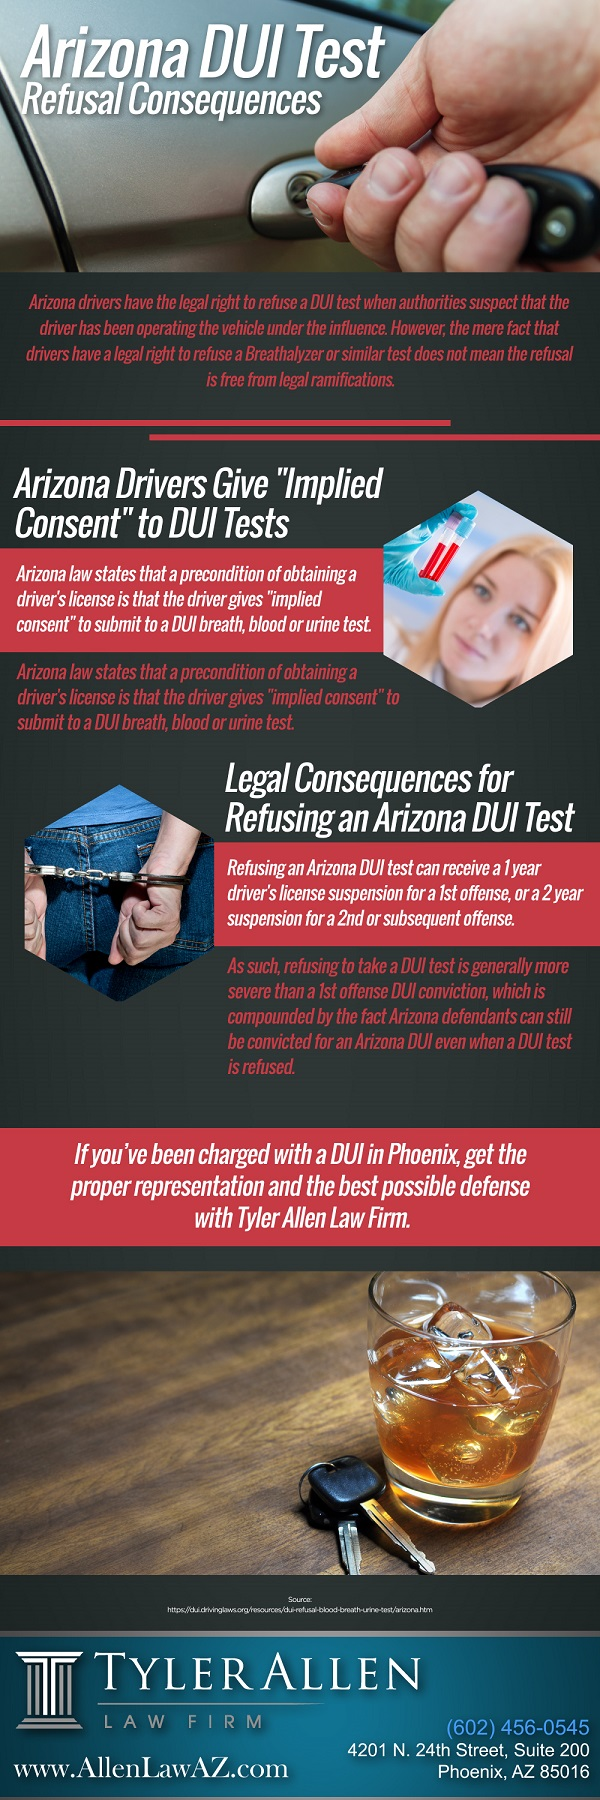 AZ-DUI-Test-Refusal-Consequences.jpg